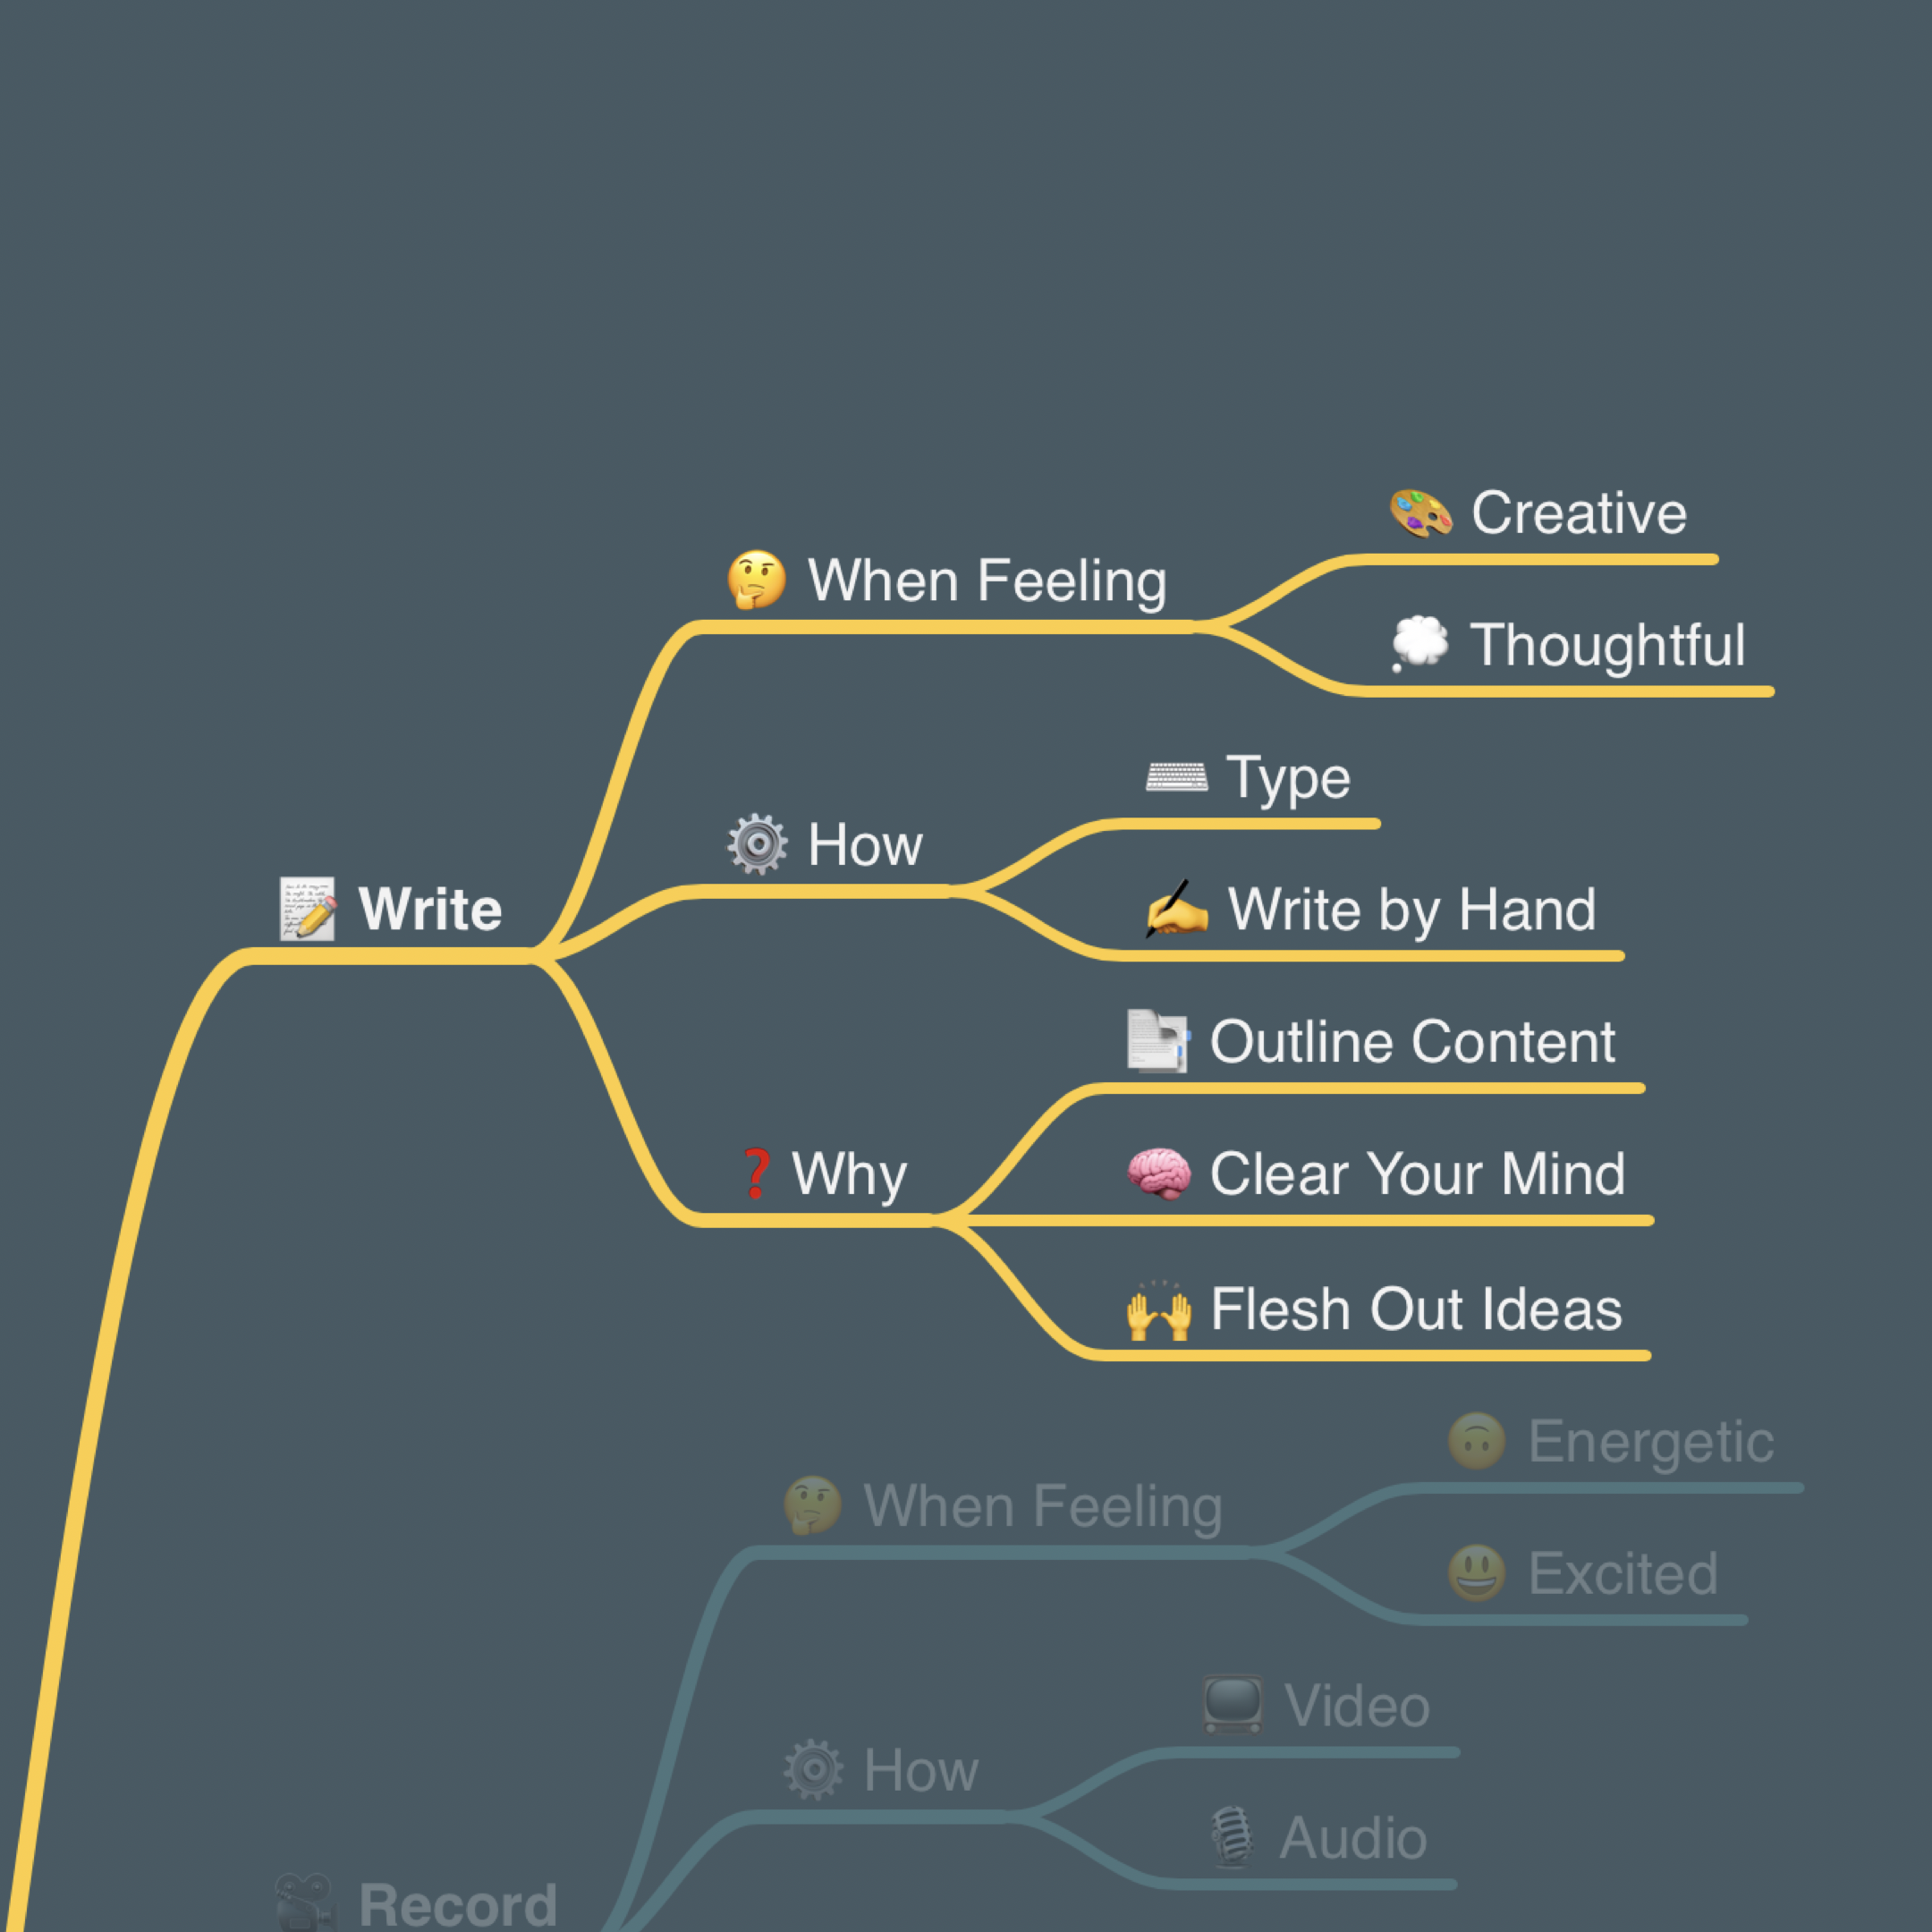 Sean's Content Creation Flywheel - Write